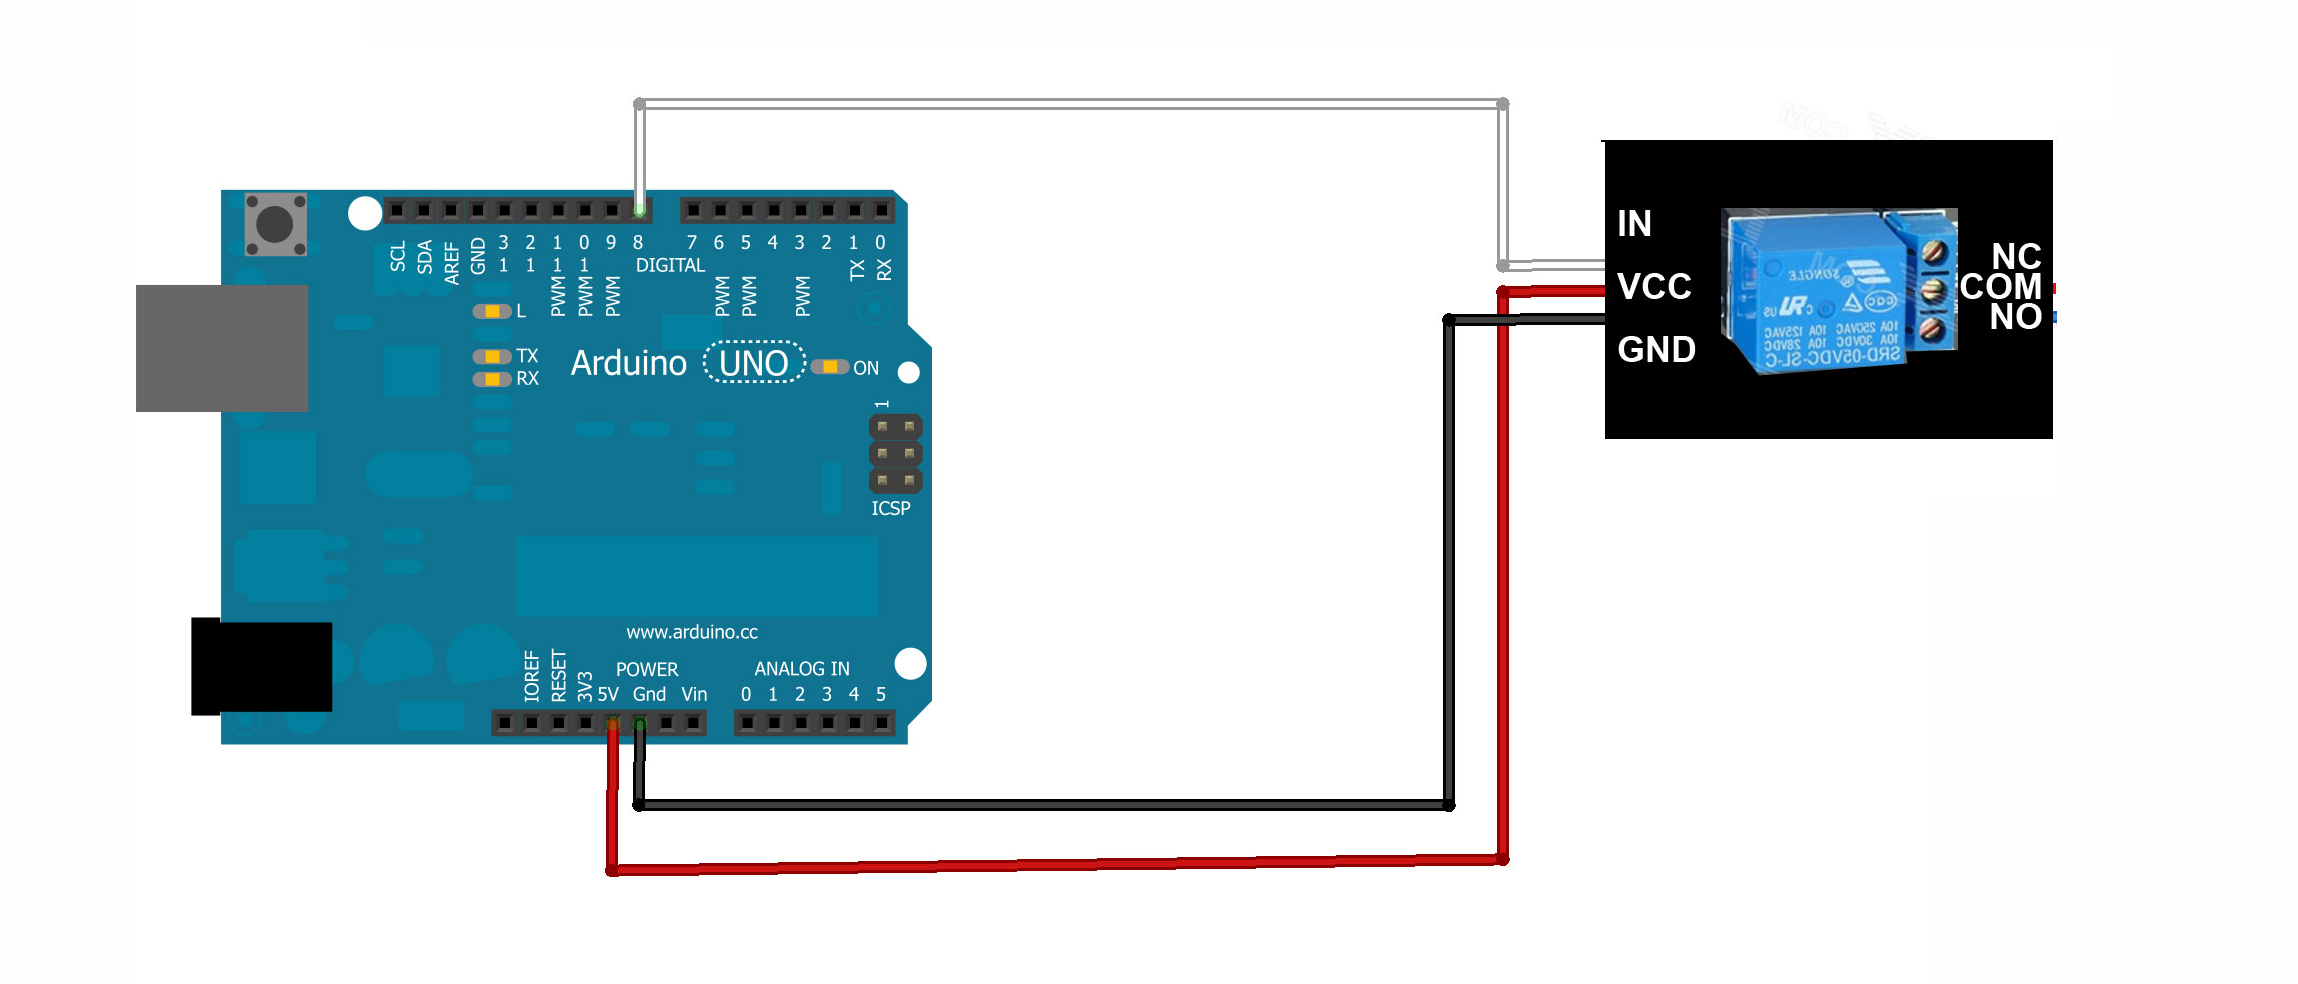 How To Make An Automatic Ac Switch Using Arduino Uno Which Can Turn Control Relay Wiring On And Off At A Particular Set Time Quora